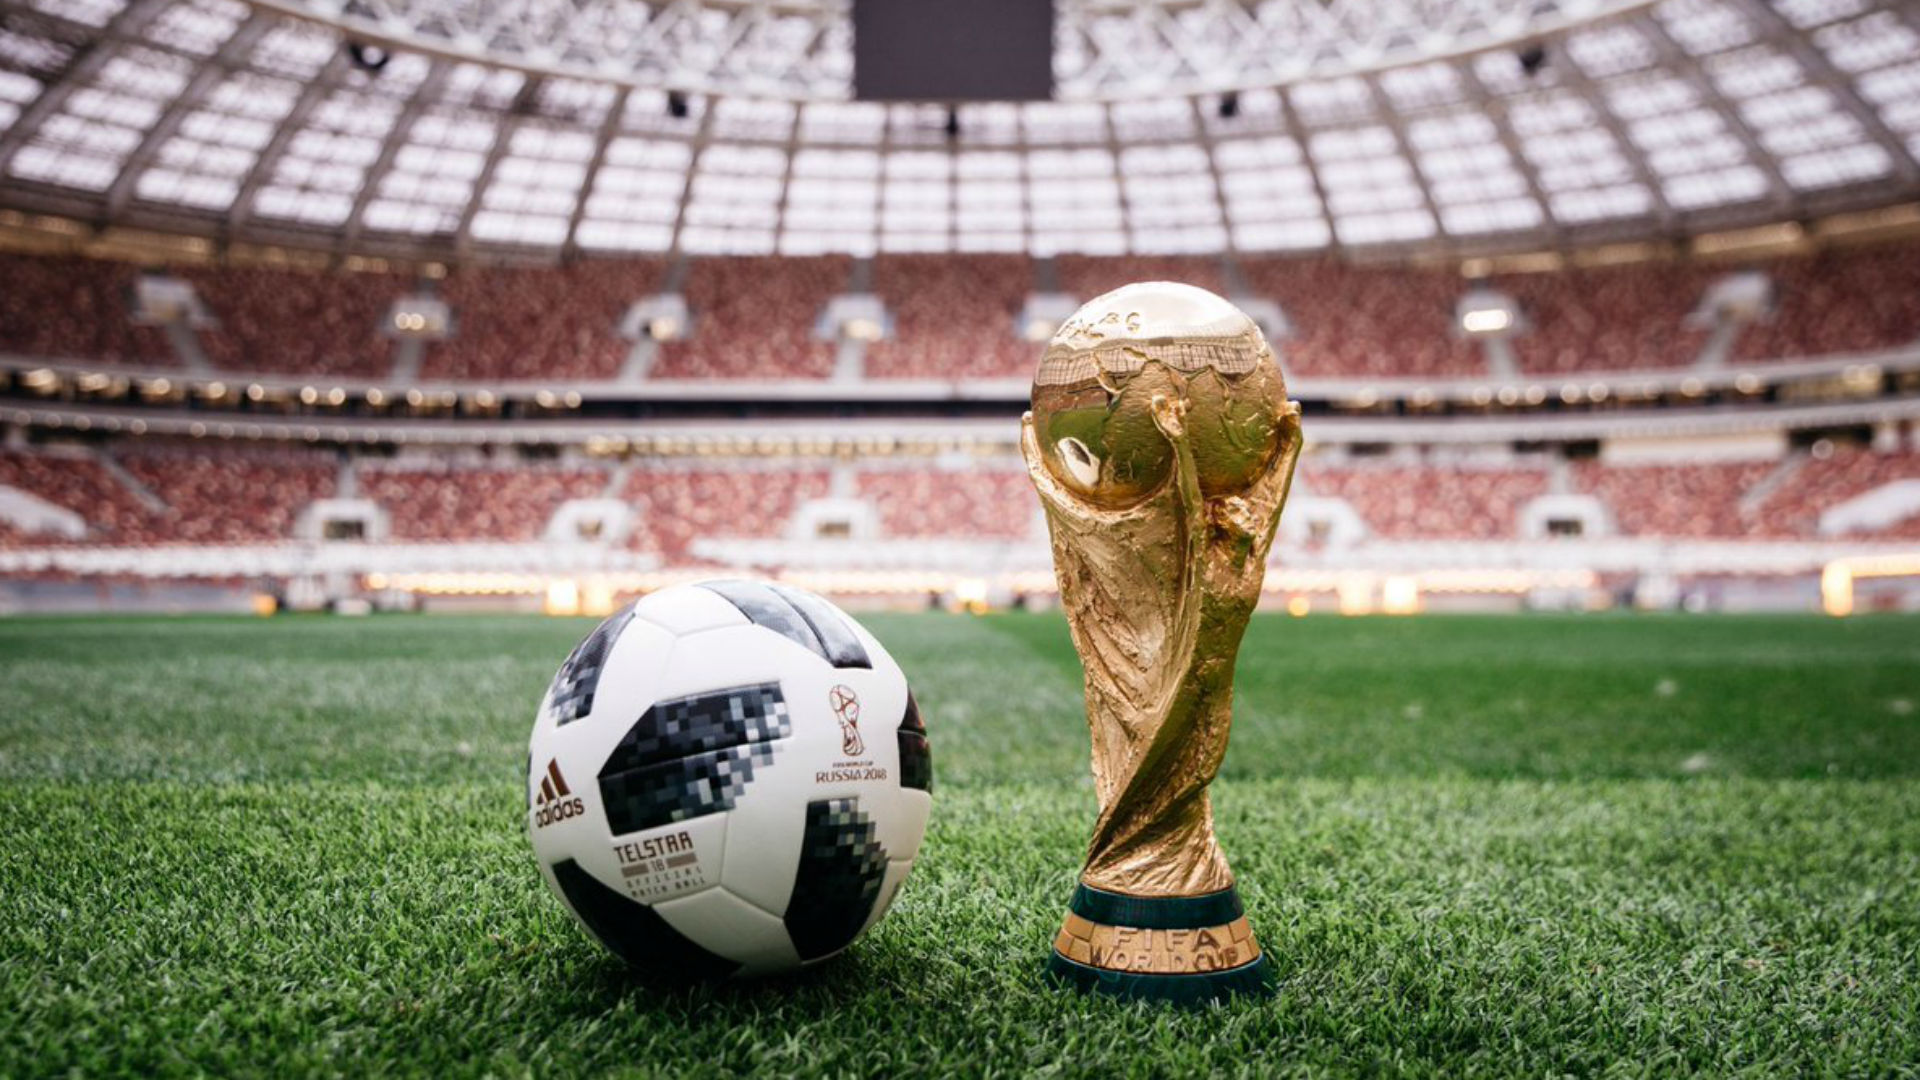 Adidas Telstar 18 World Cup 2018